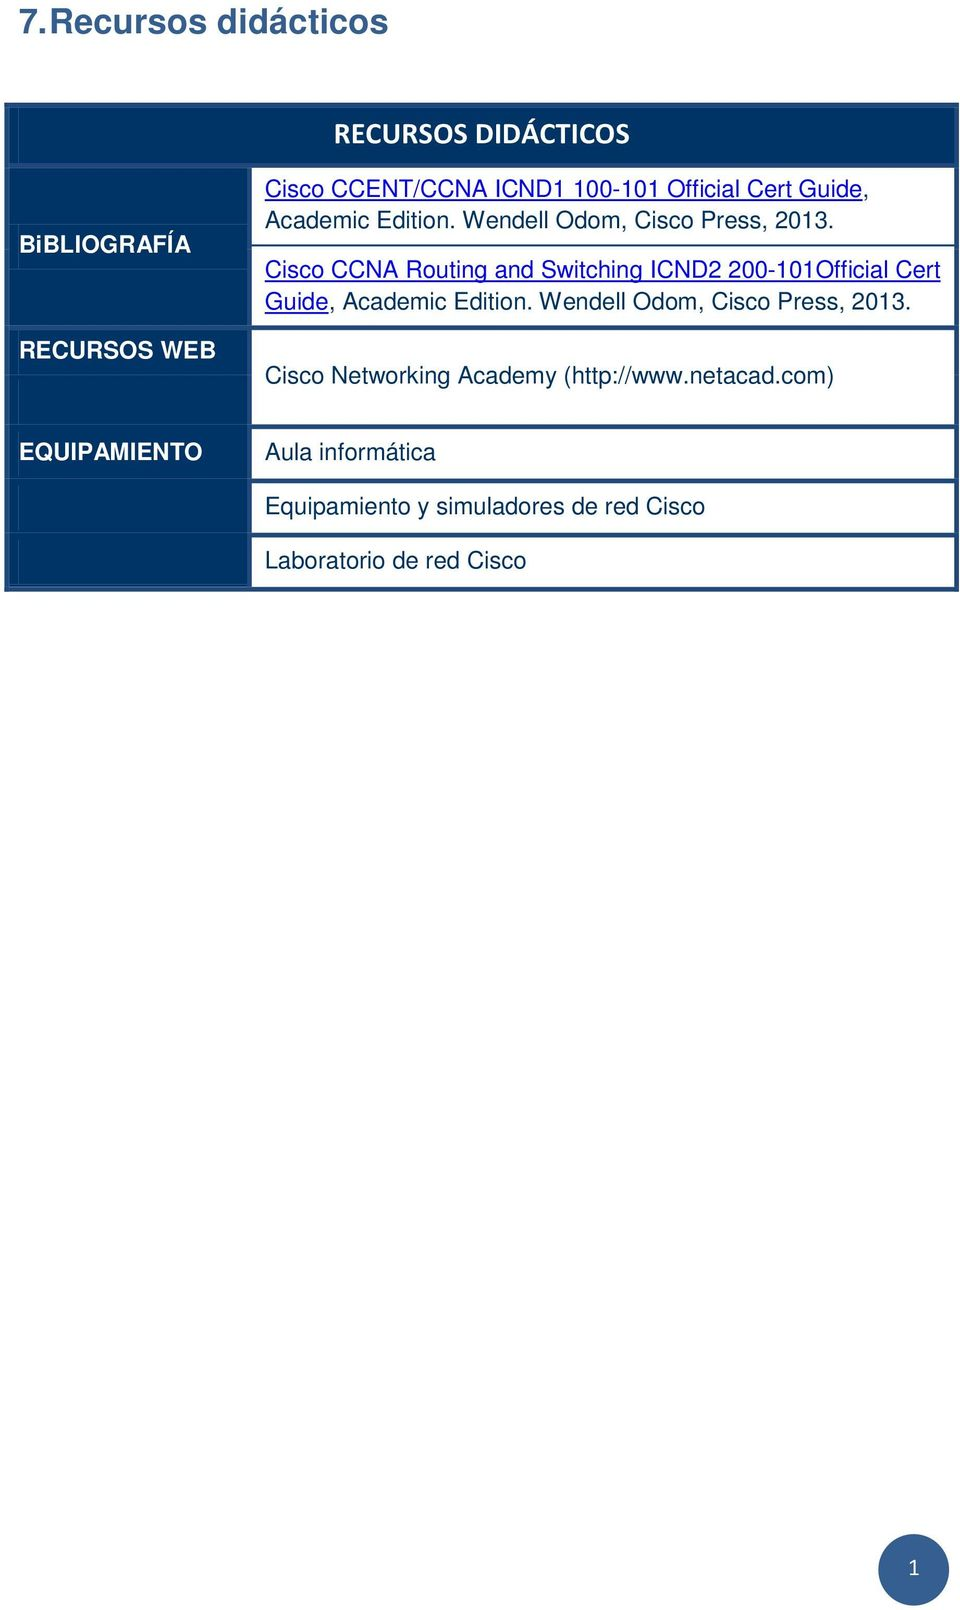 Cisco CCNA Routing and Switching ICND2 200-101Official  Cisco Networking Academy (http://www.netacad.